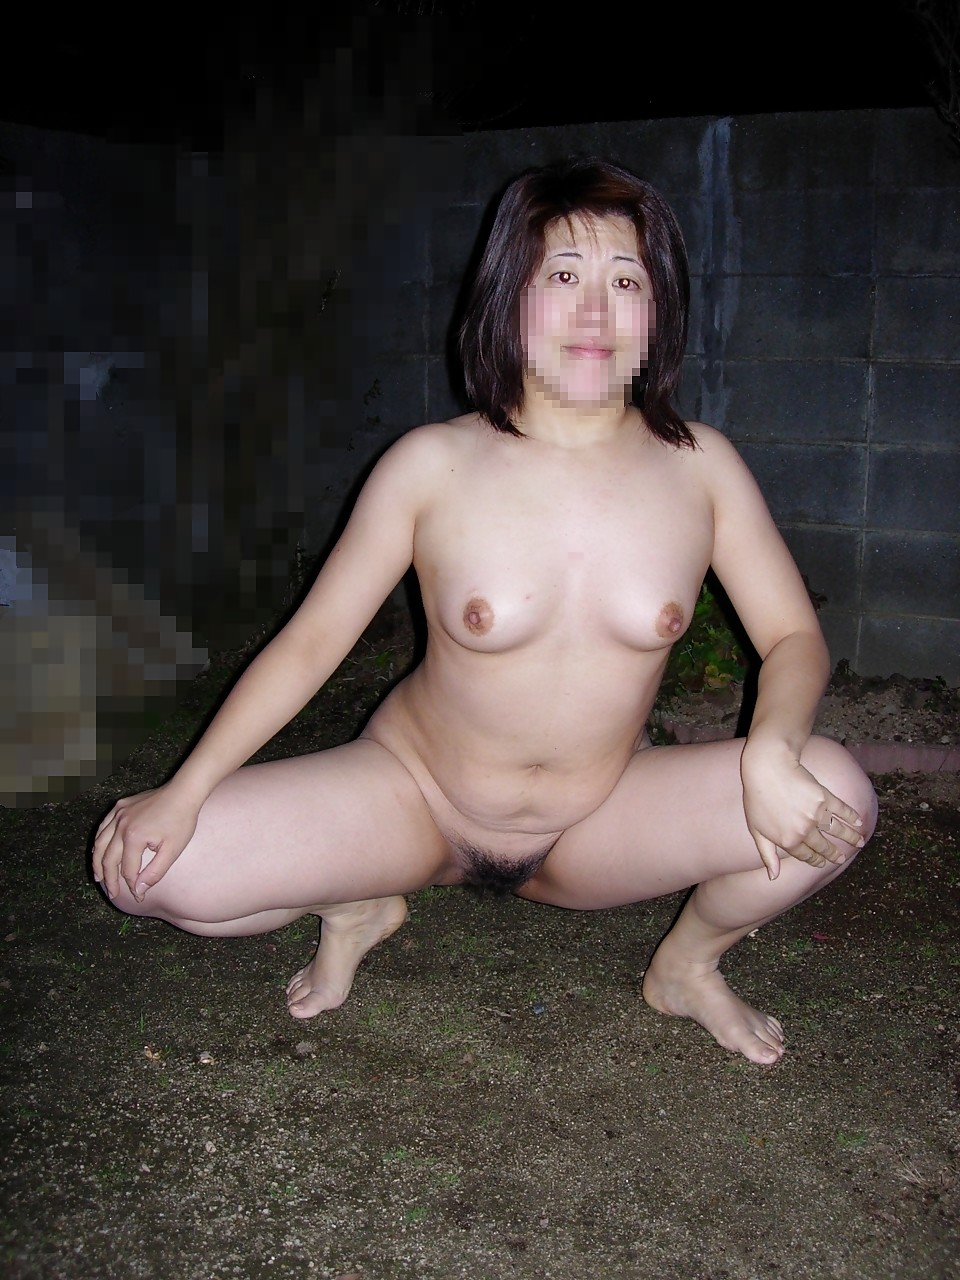 Homemade Outdoor Sex Video